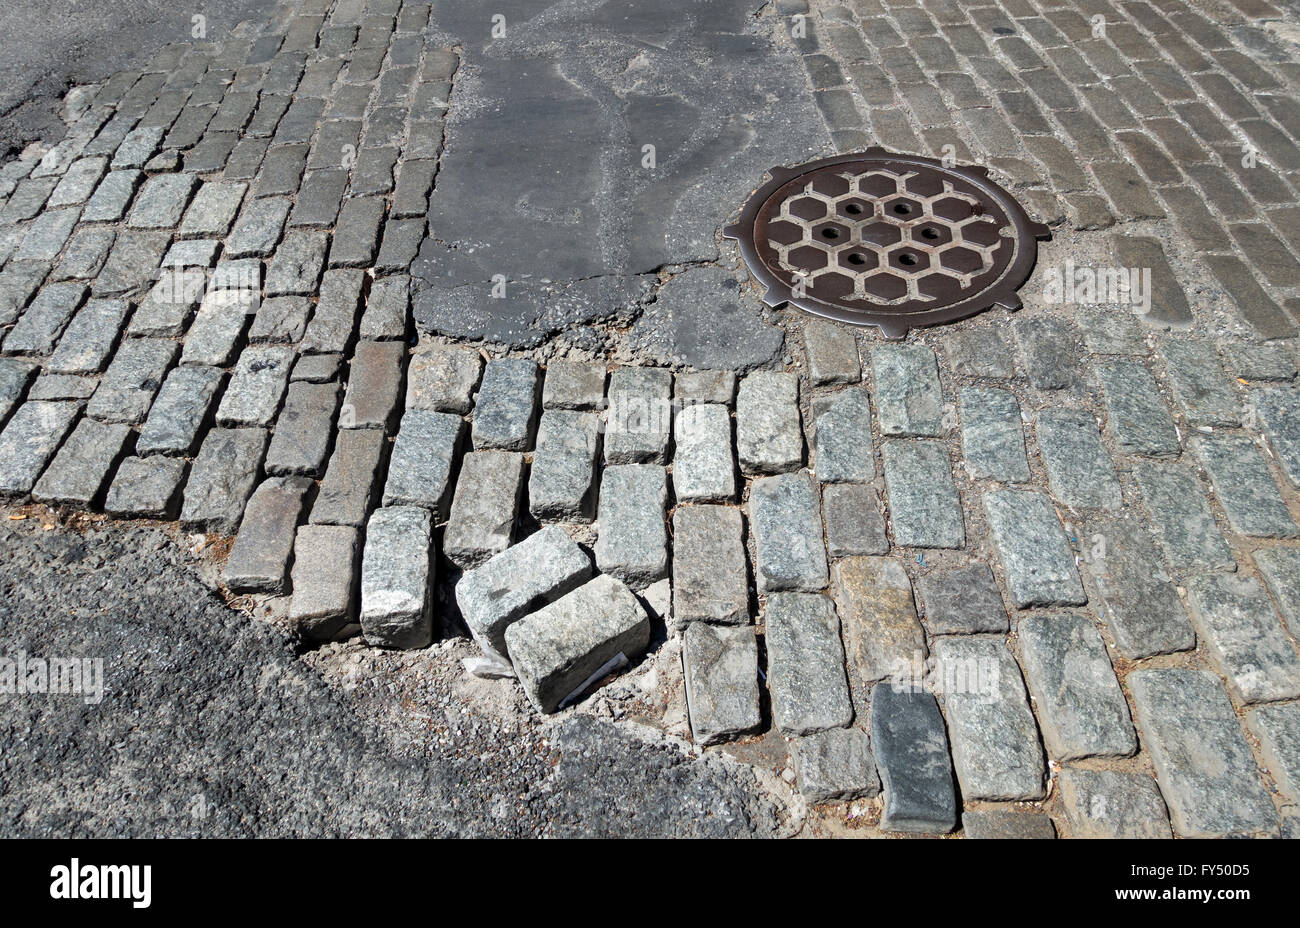 A mix of different types of cobblestones in disrepair on a street in Soho in Lower Manhattan in New York City - Stock Image